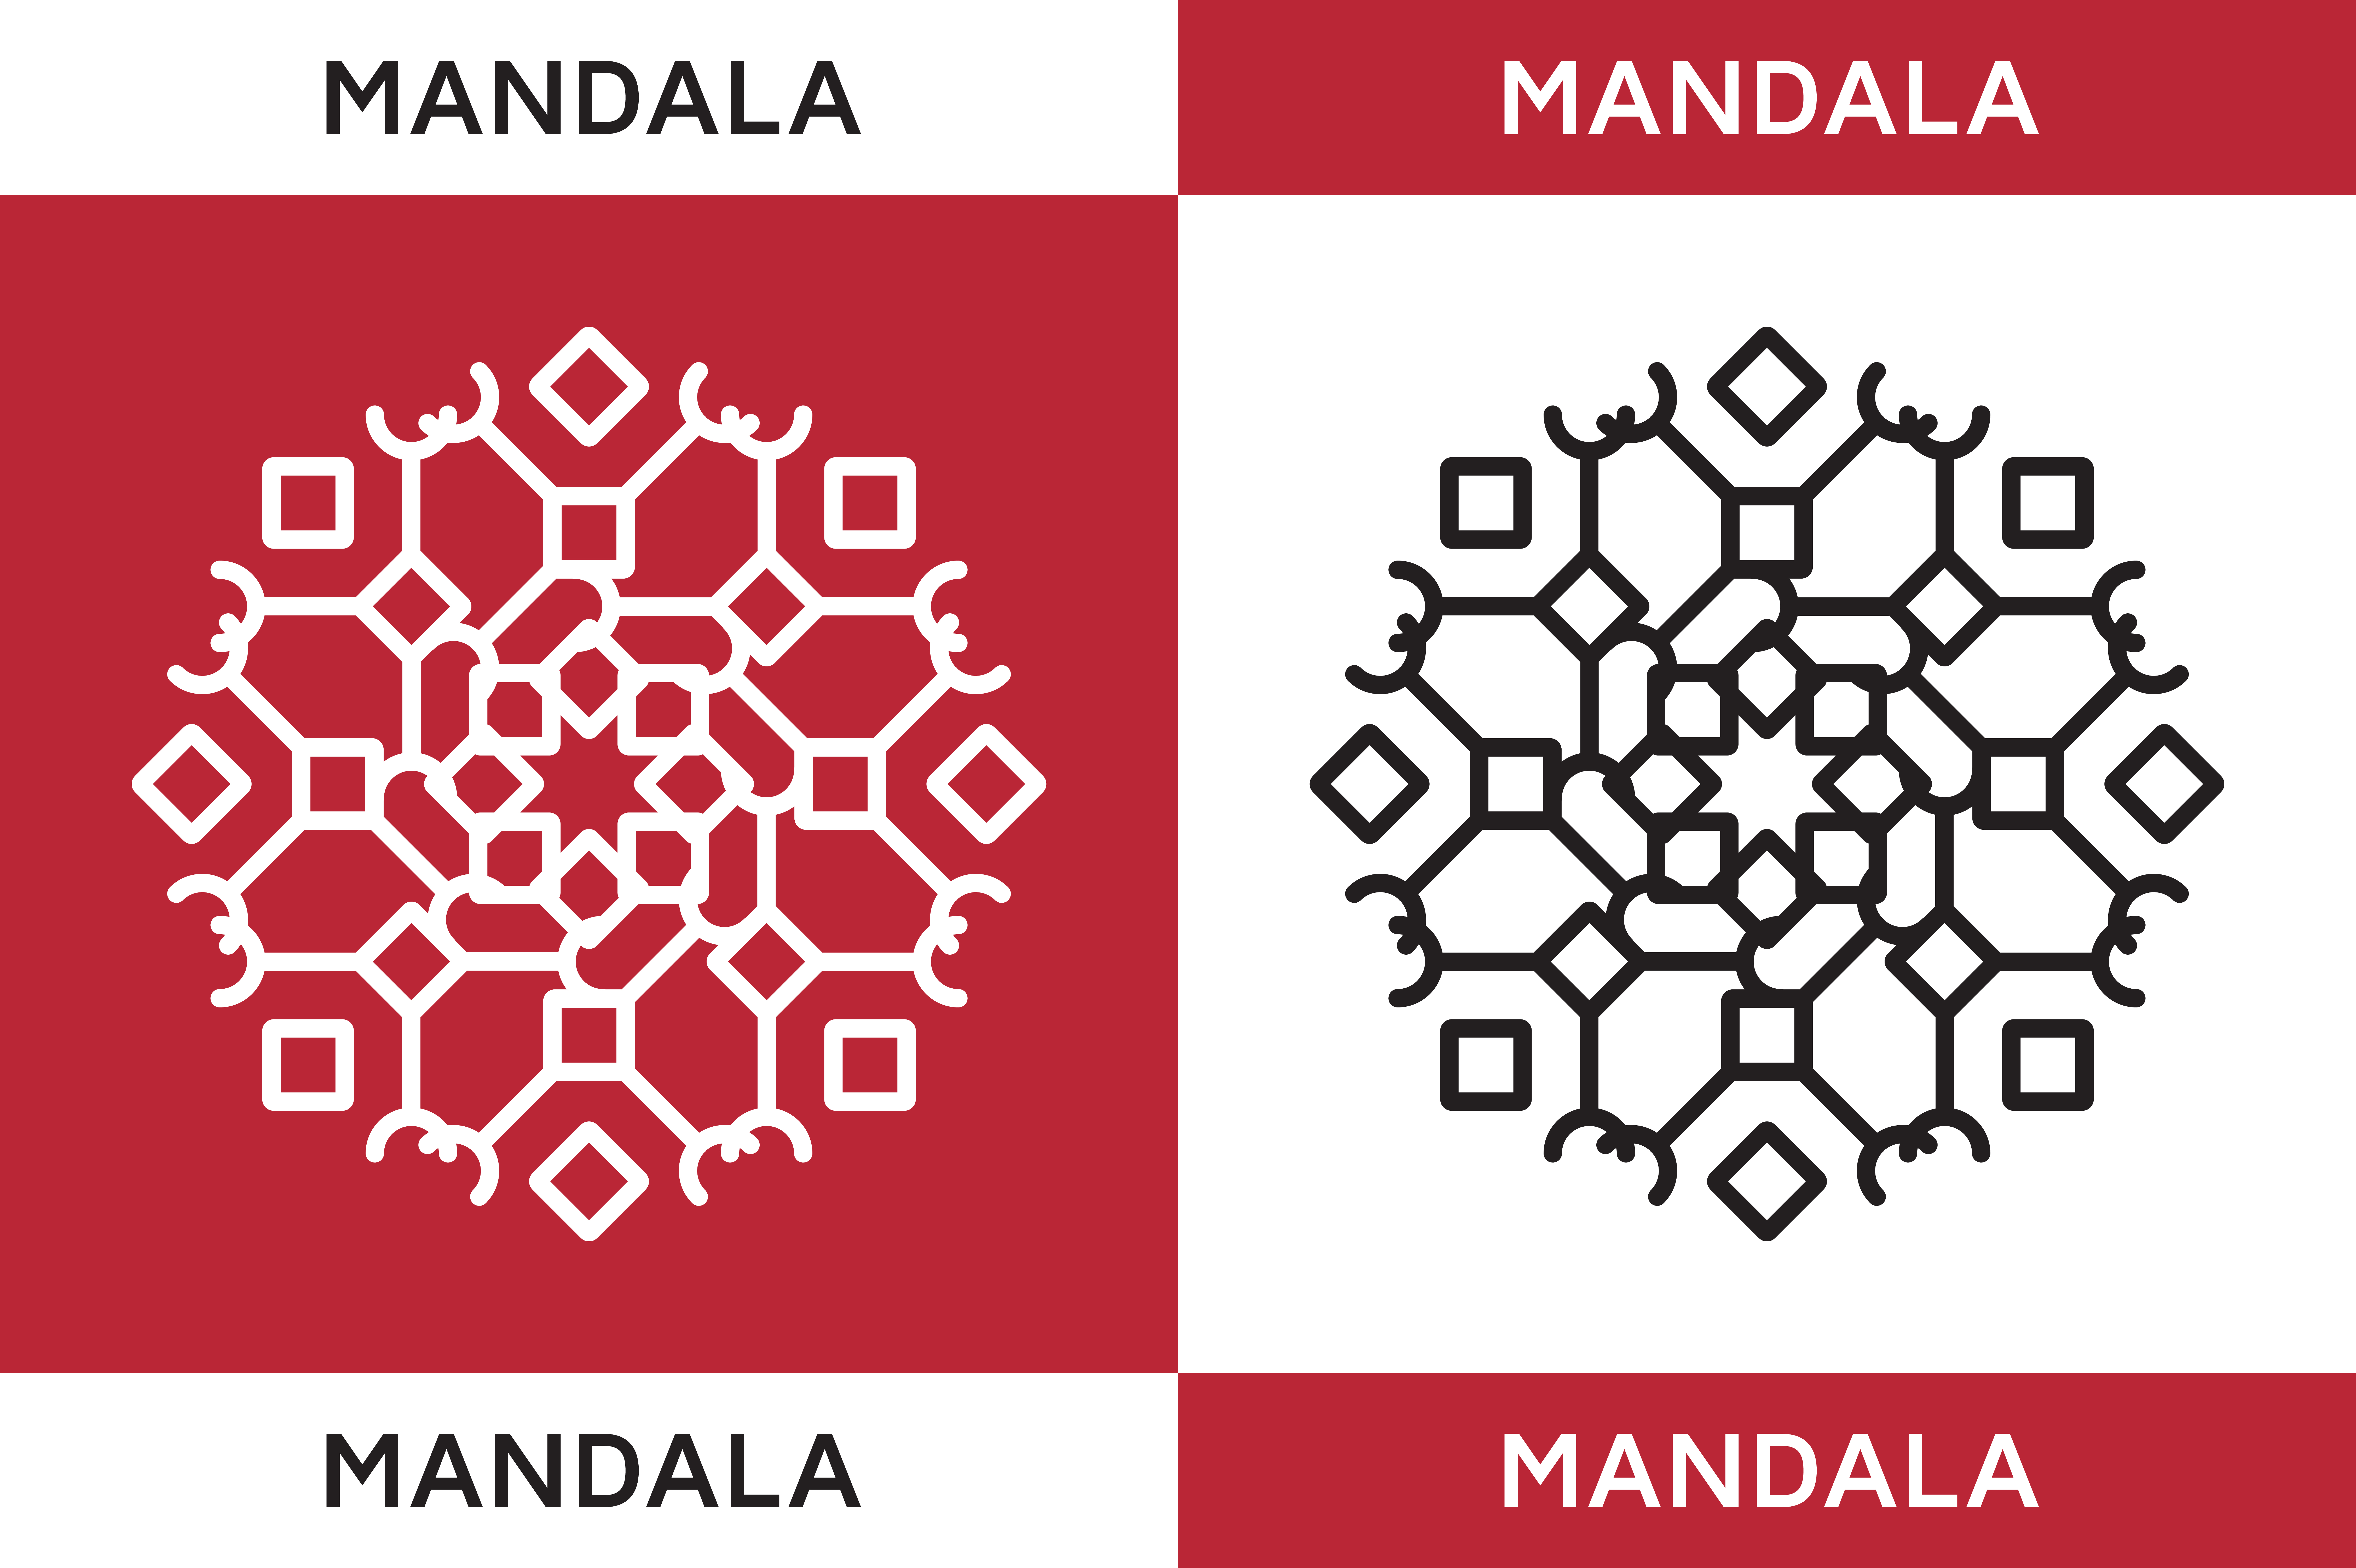 Download Free Mandala Ornaments Graphic By Highvoice Creative Fabrica for Cricut Explore, Silhouette and other cutting machines.